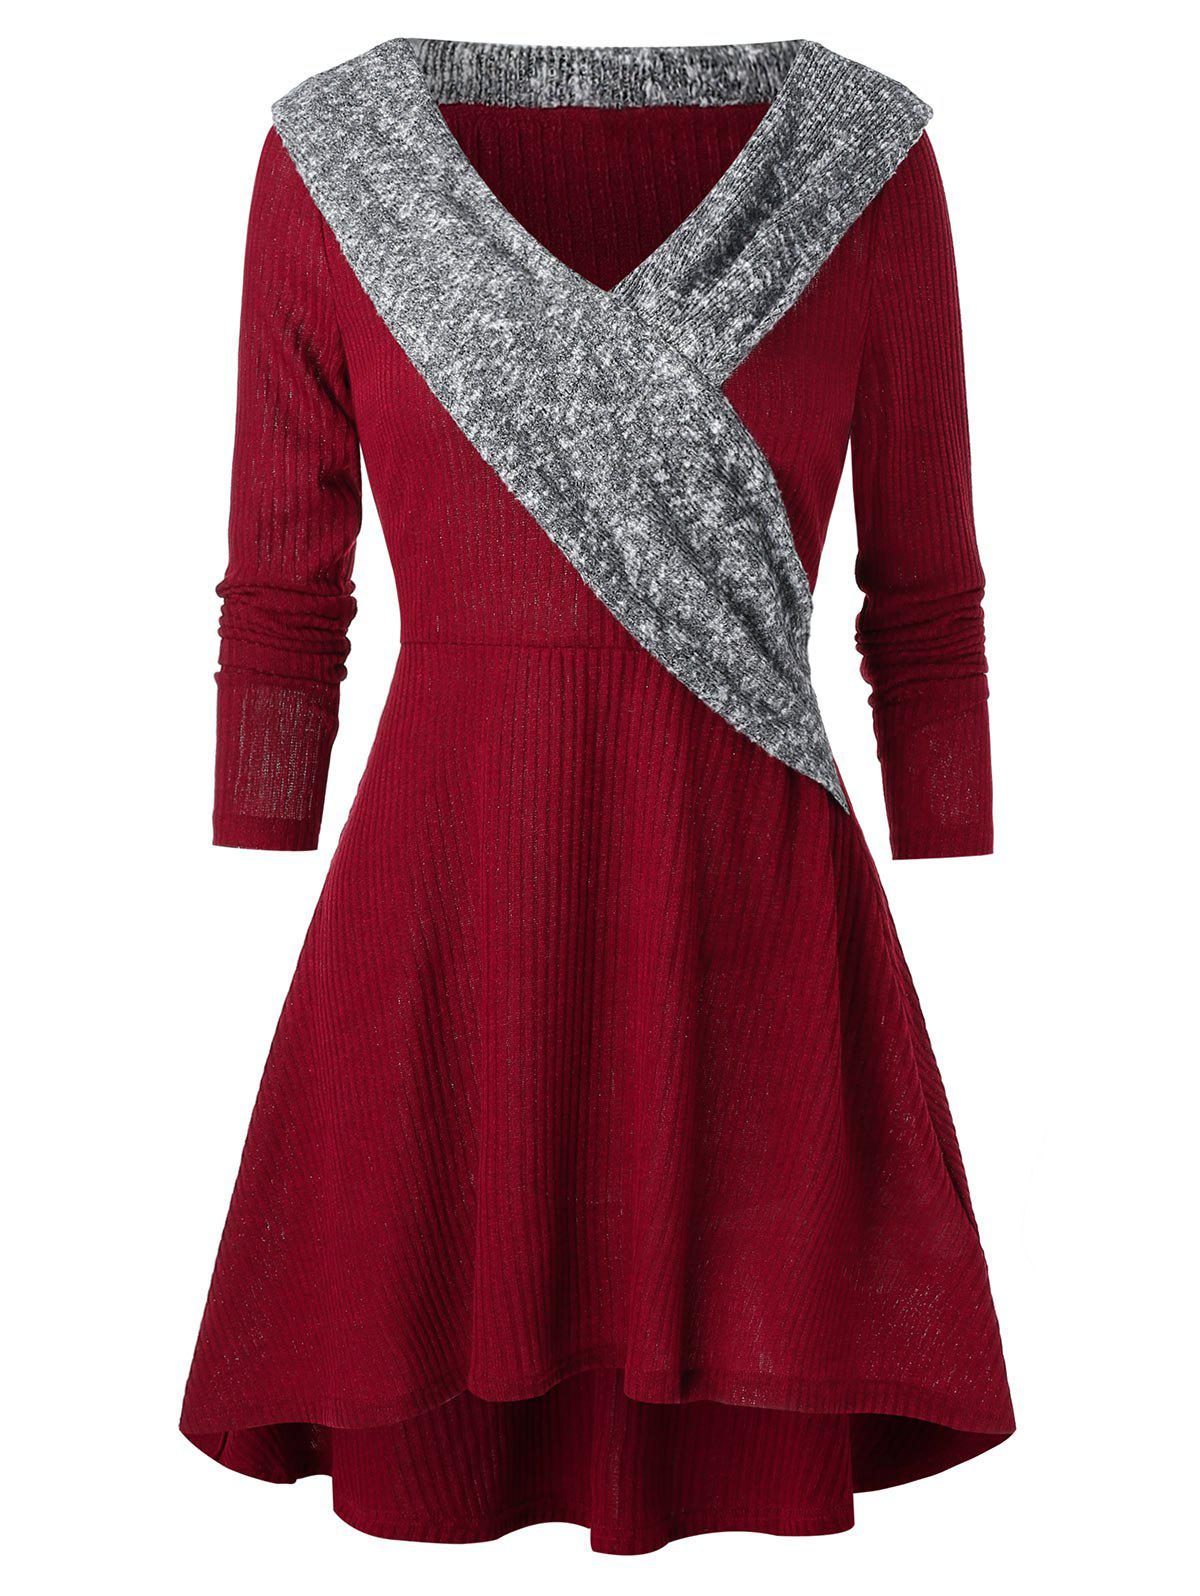 Collier Fit et Flare Tricoté V Casual Dress - Rouge Vineux 3XL